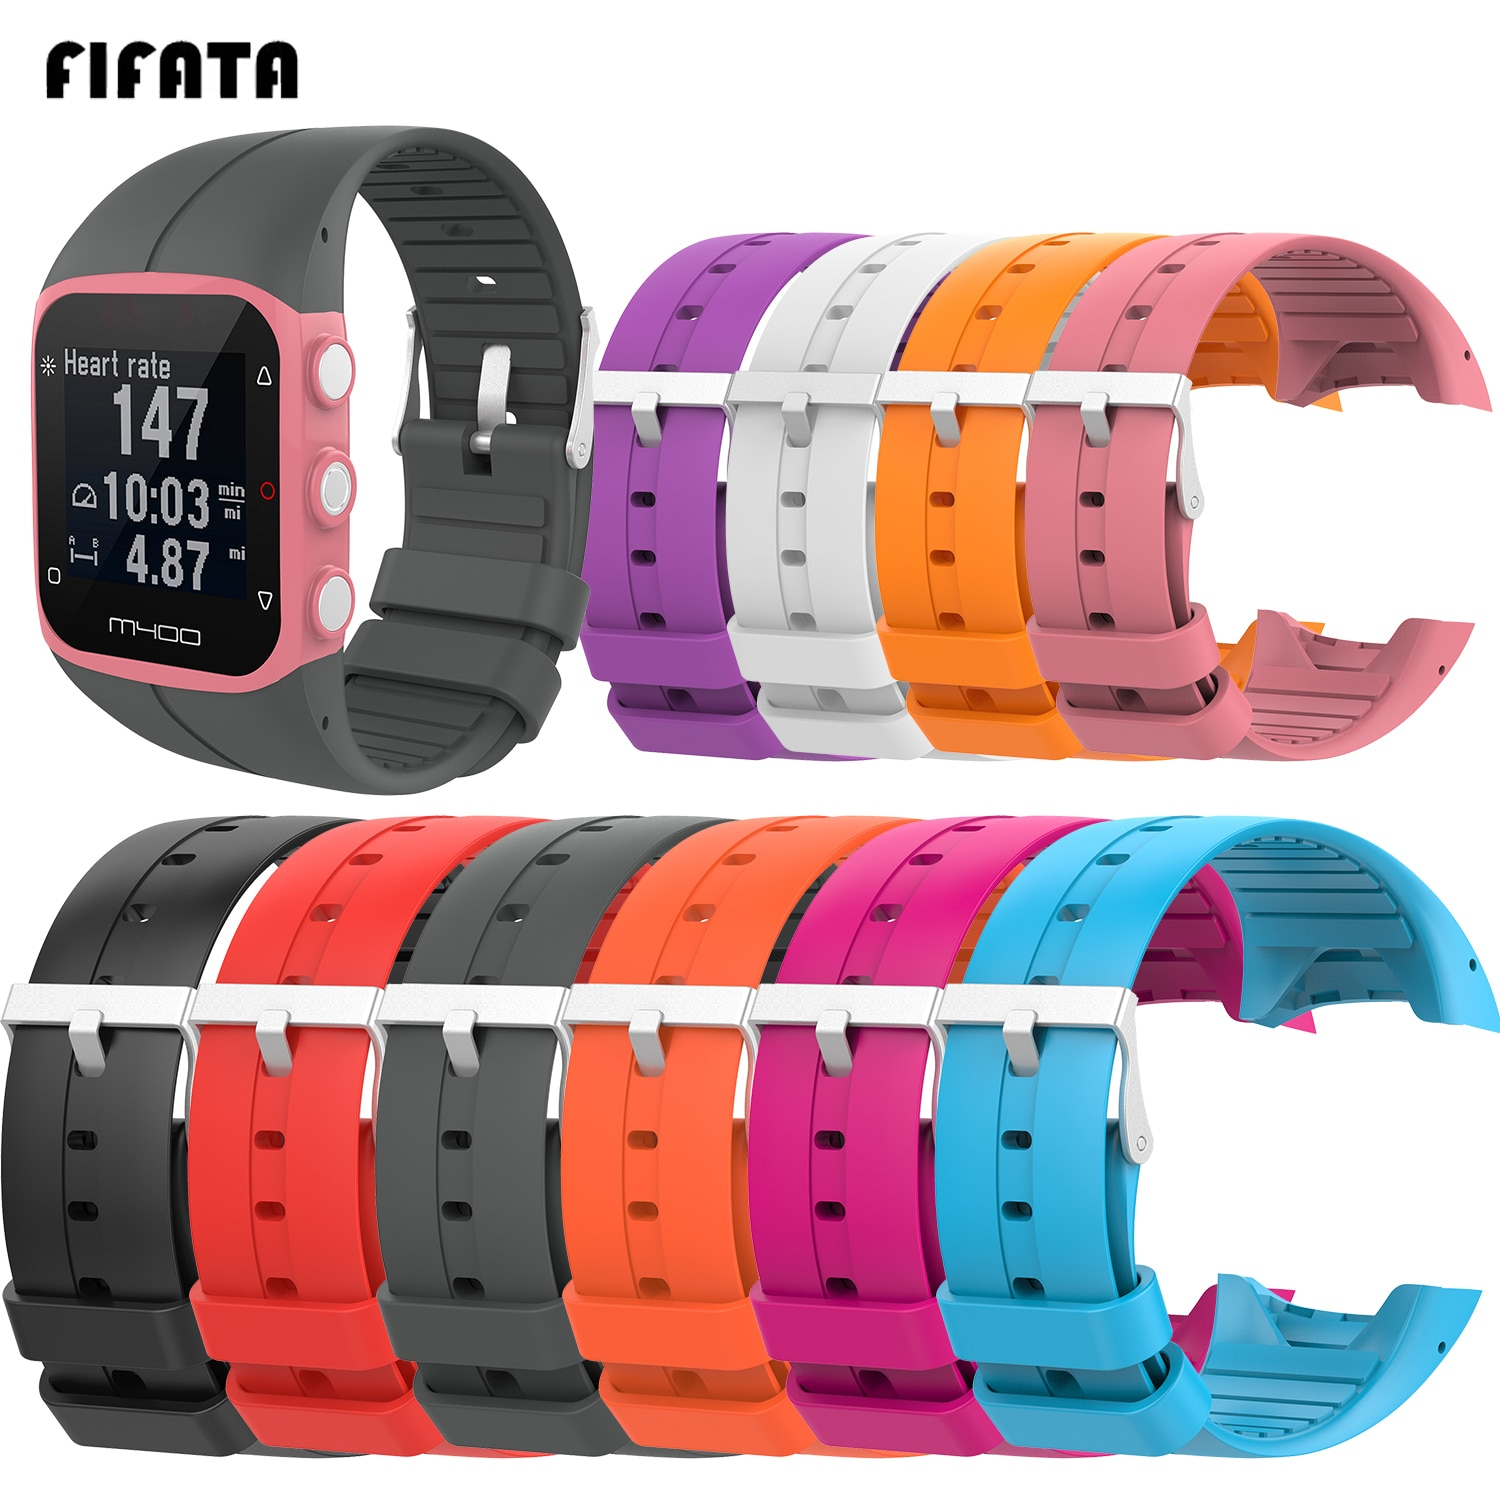 FIFATA Replacement Soft Silicone Watch Sport Band Strap For Polar M400 Band For Polar M430 Smart Watch Bracelet Wrist Strap high quality comfortable silicone replacement wrist watch band for polar v800 smart bracelet with tool smart watch strap